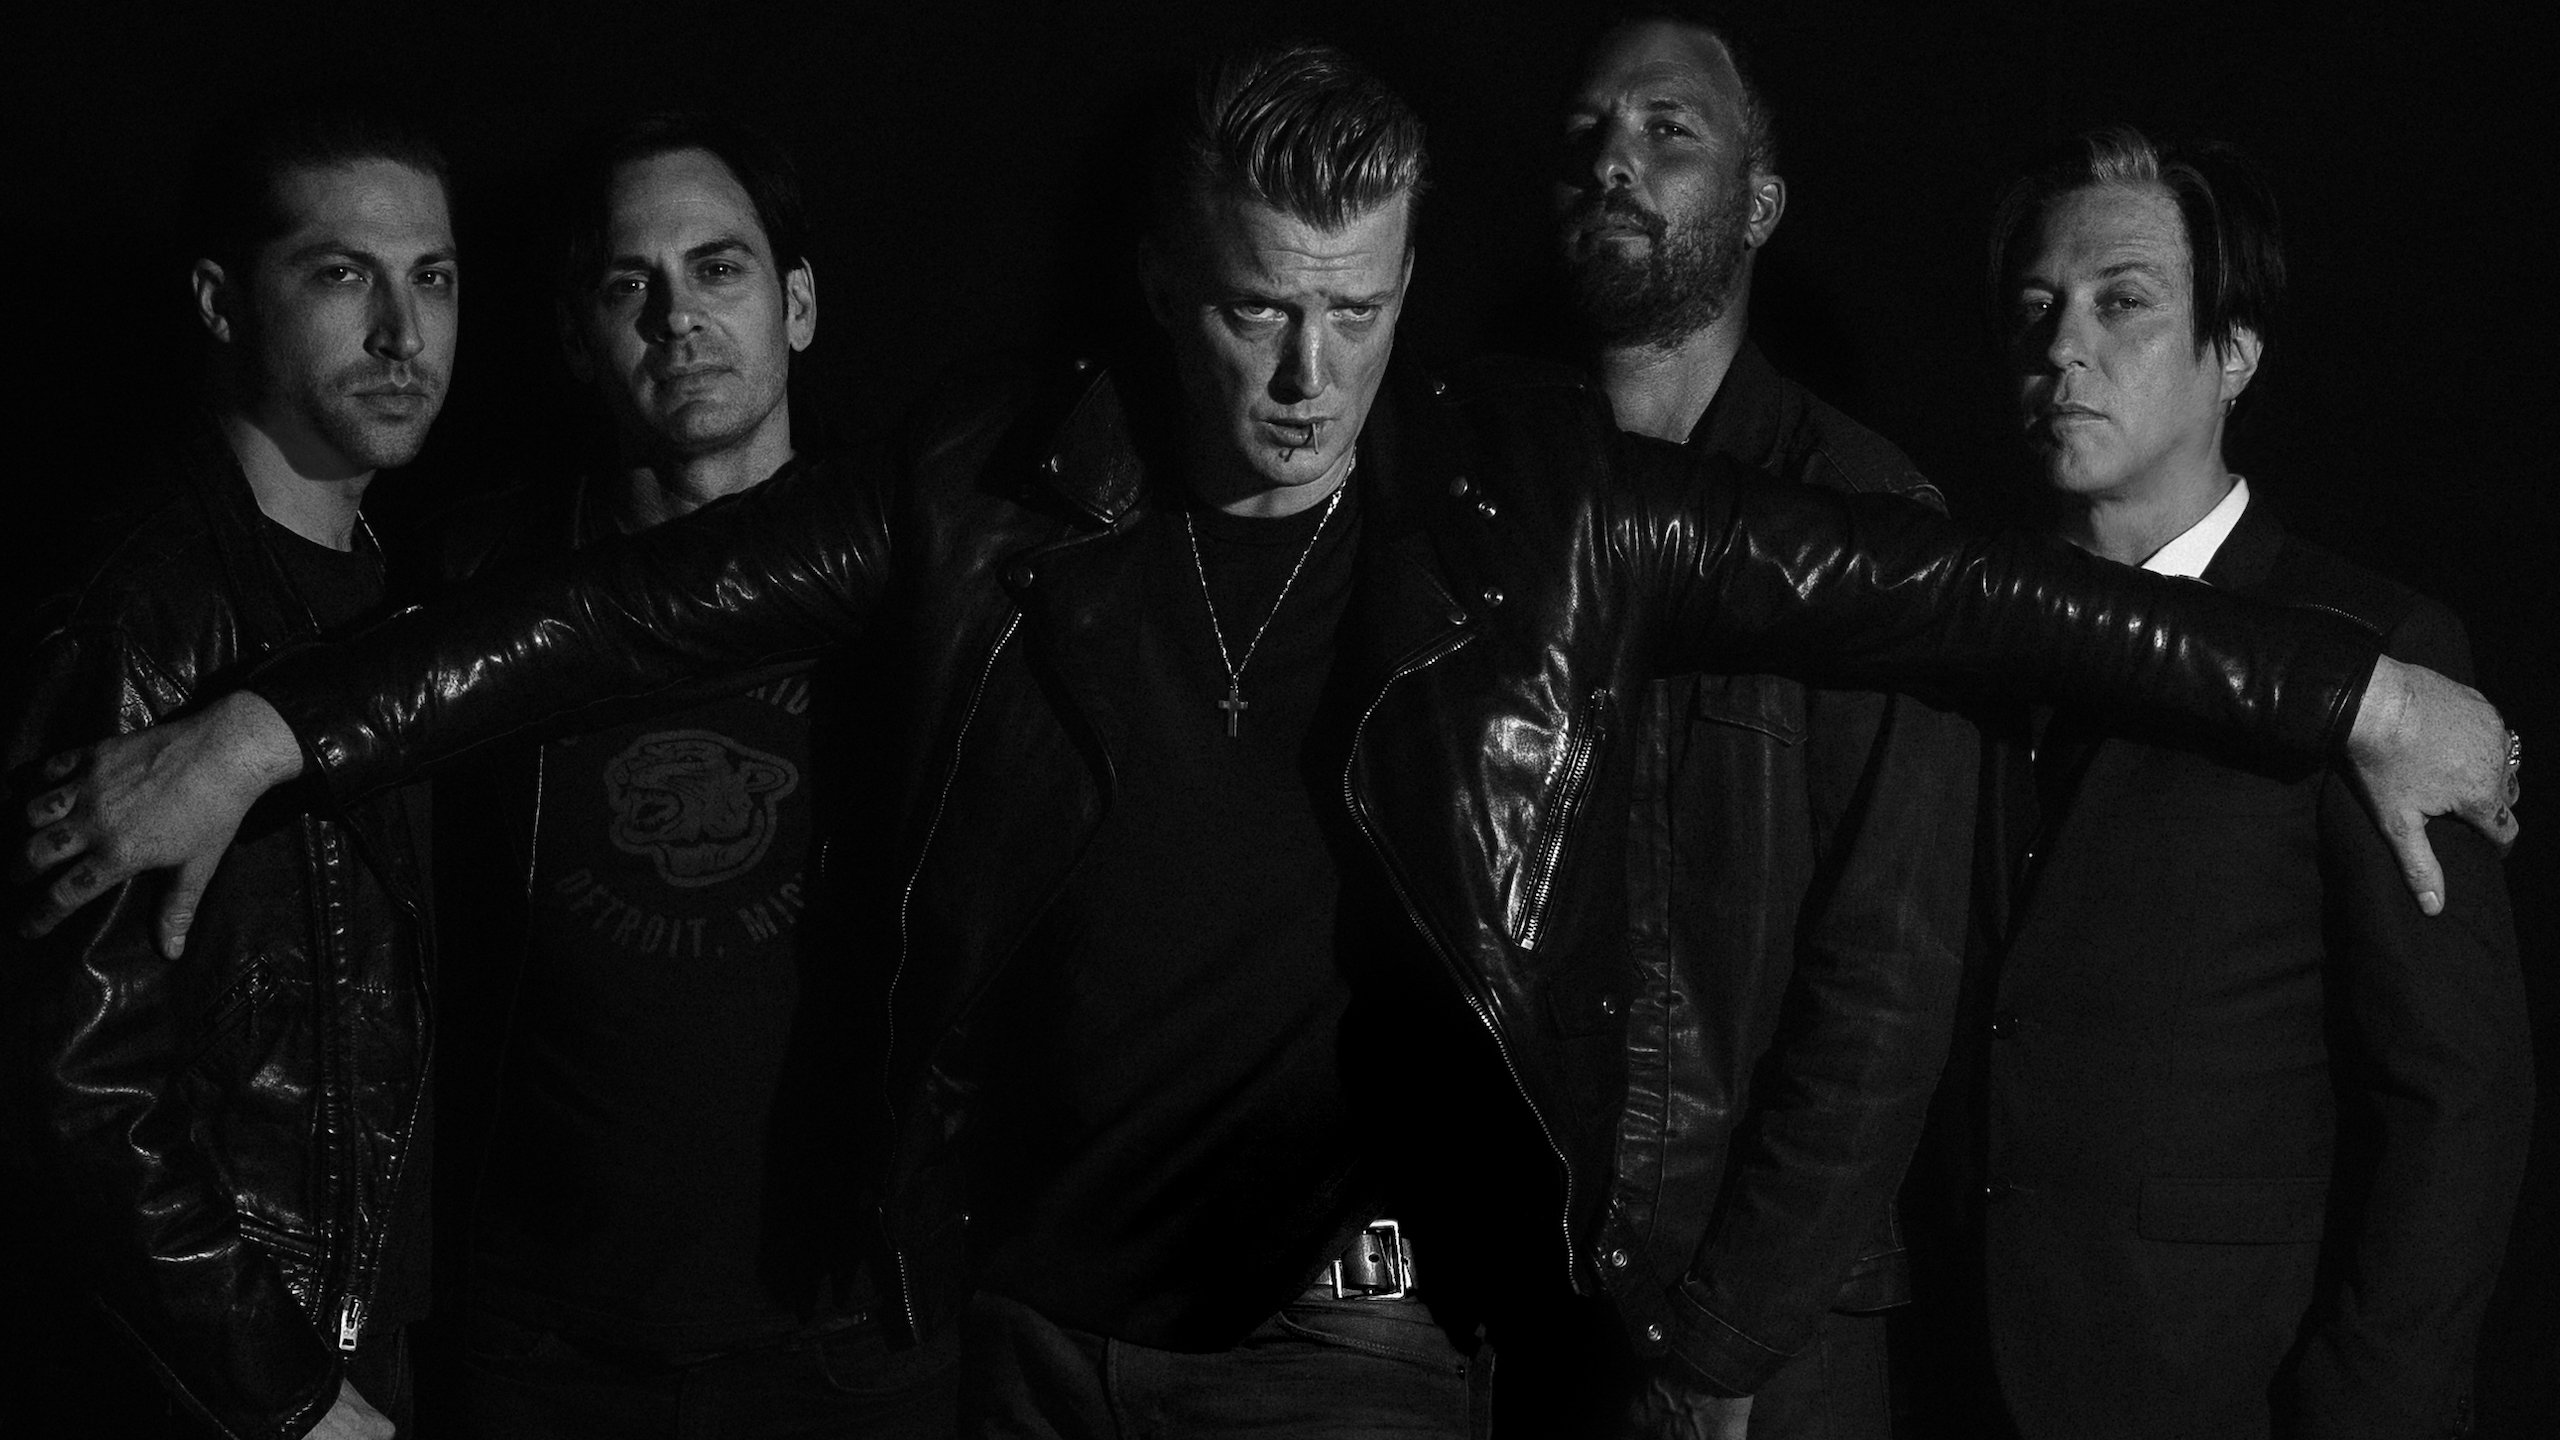 Here's The First Setlist From Queens Of The Stone Age's 2017